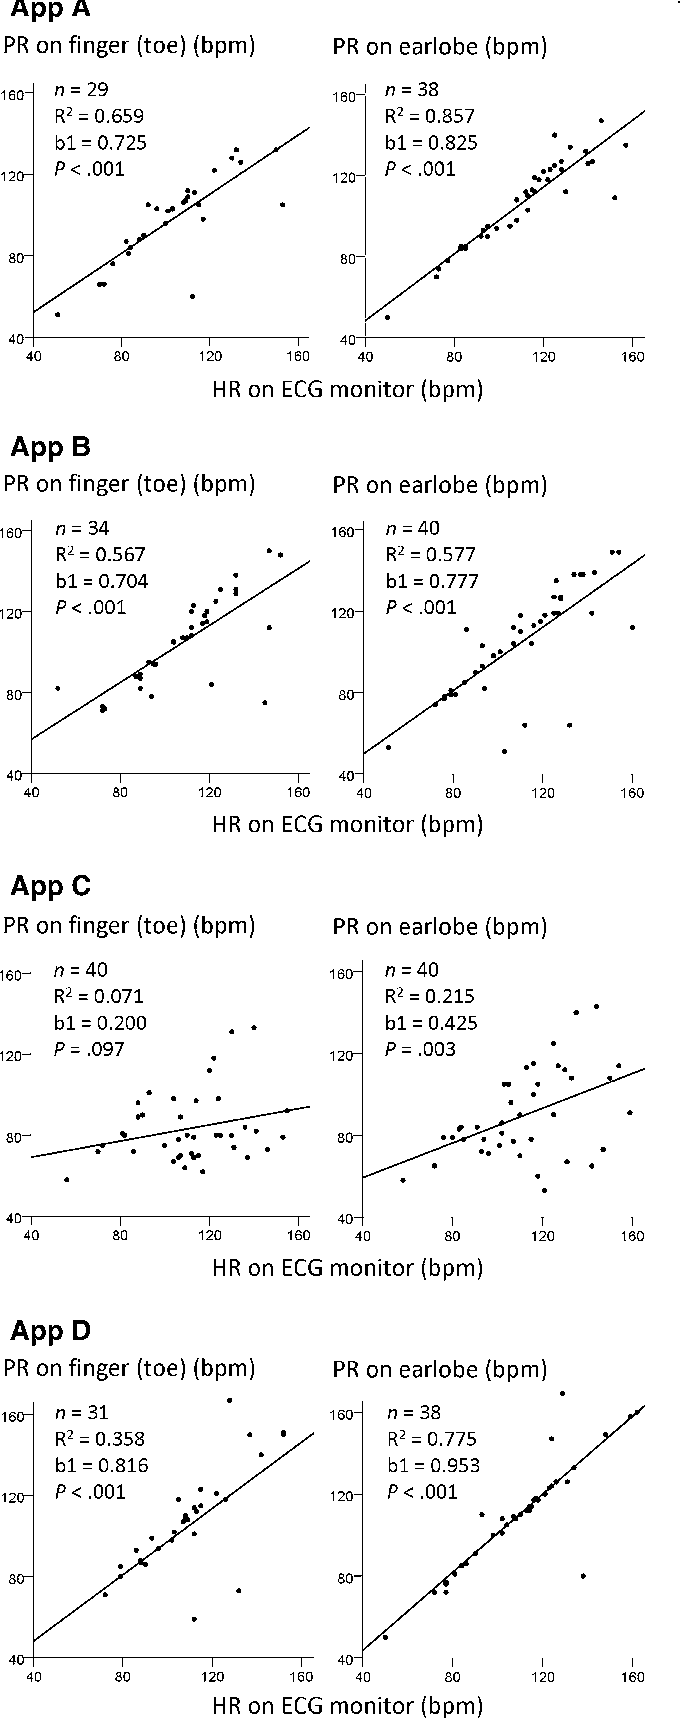 Figure 1 from Smartphone Applications (Apps) for Heart Rate